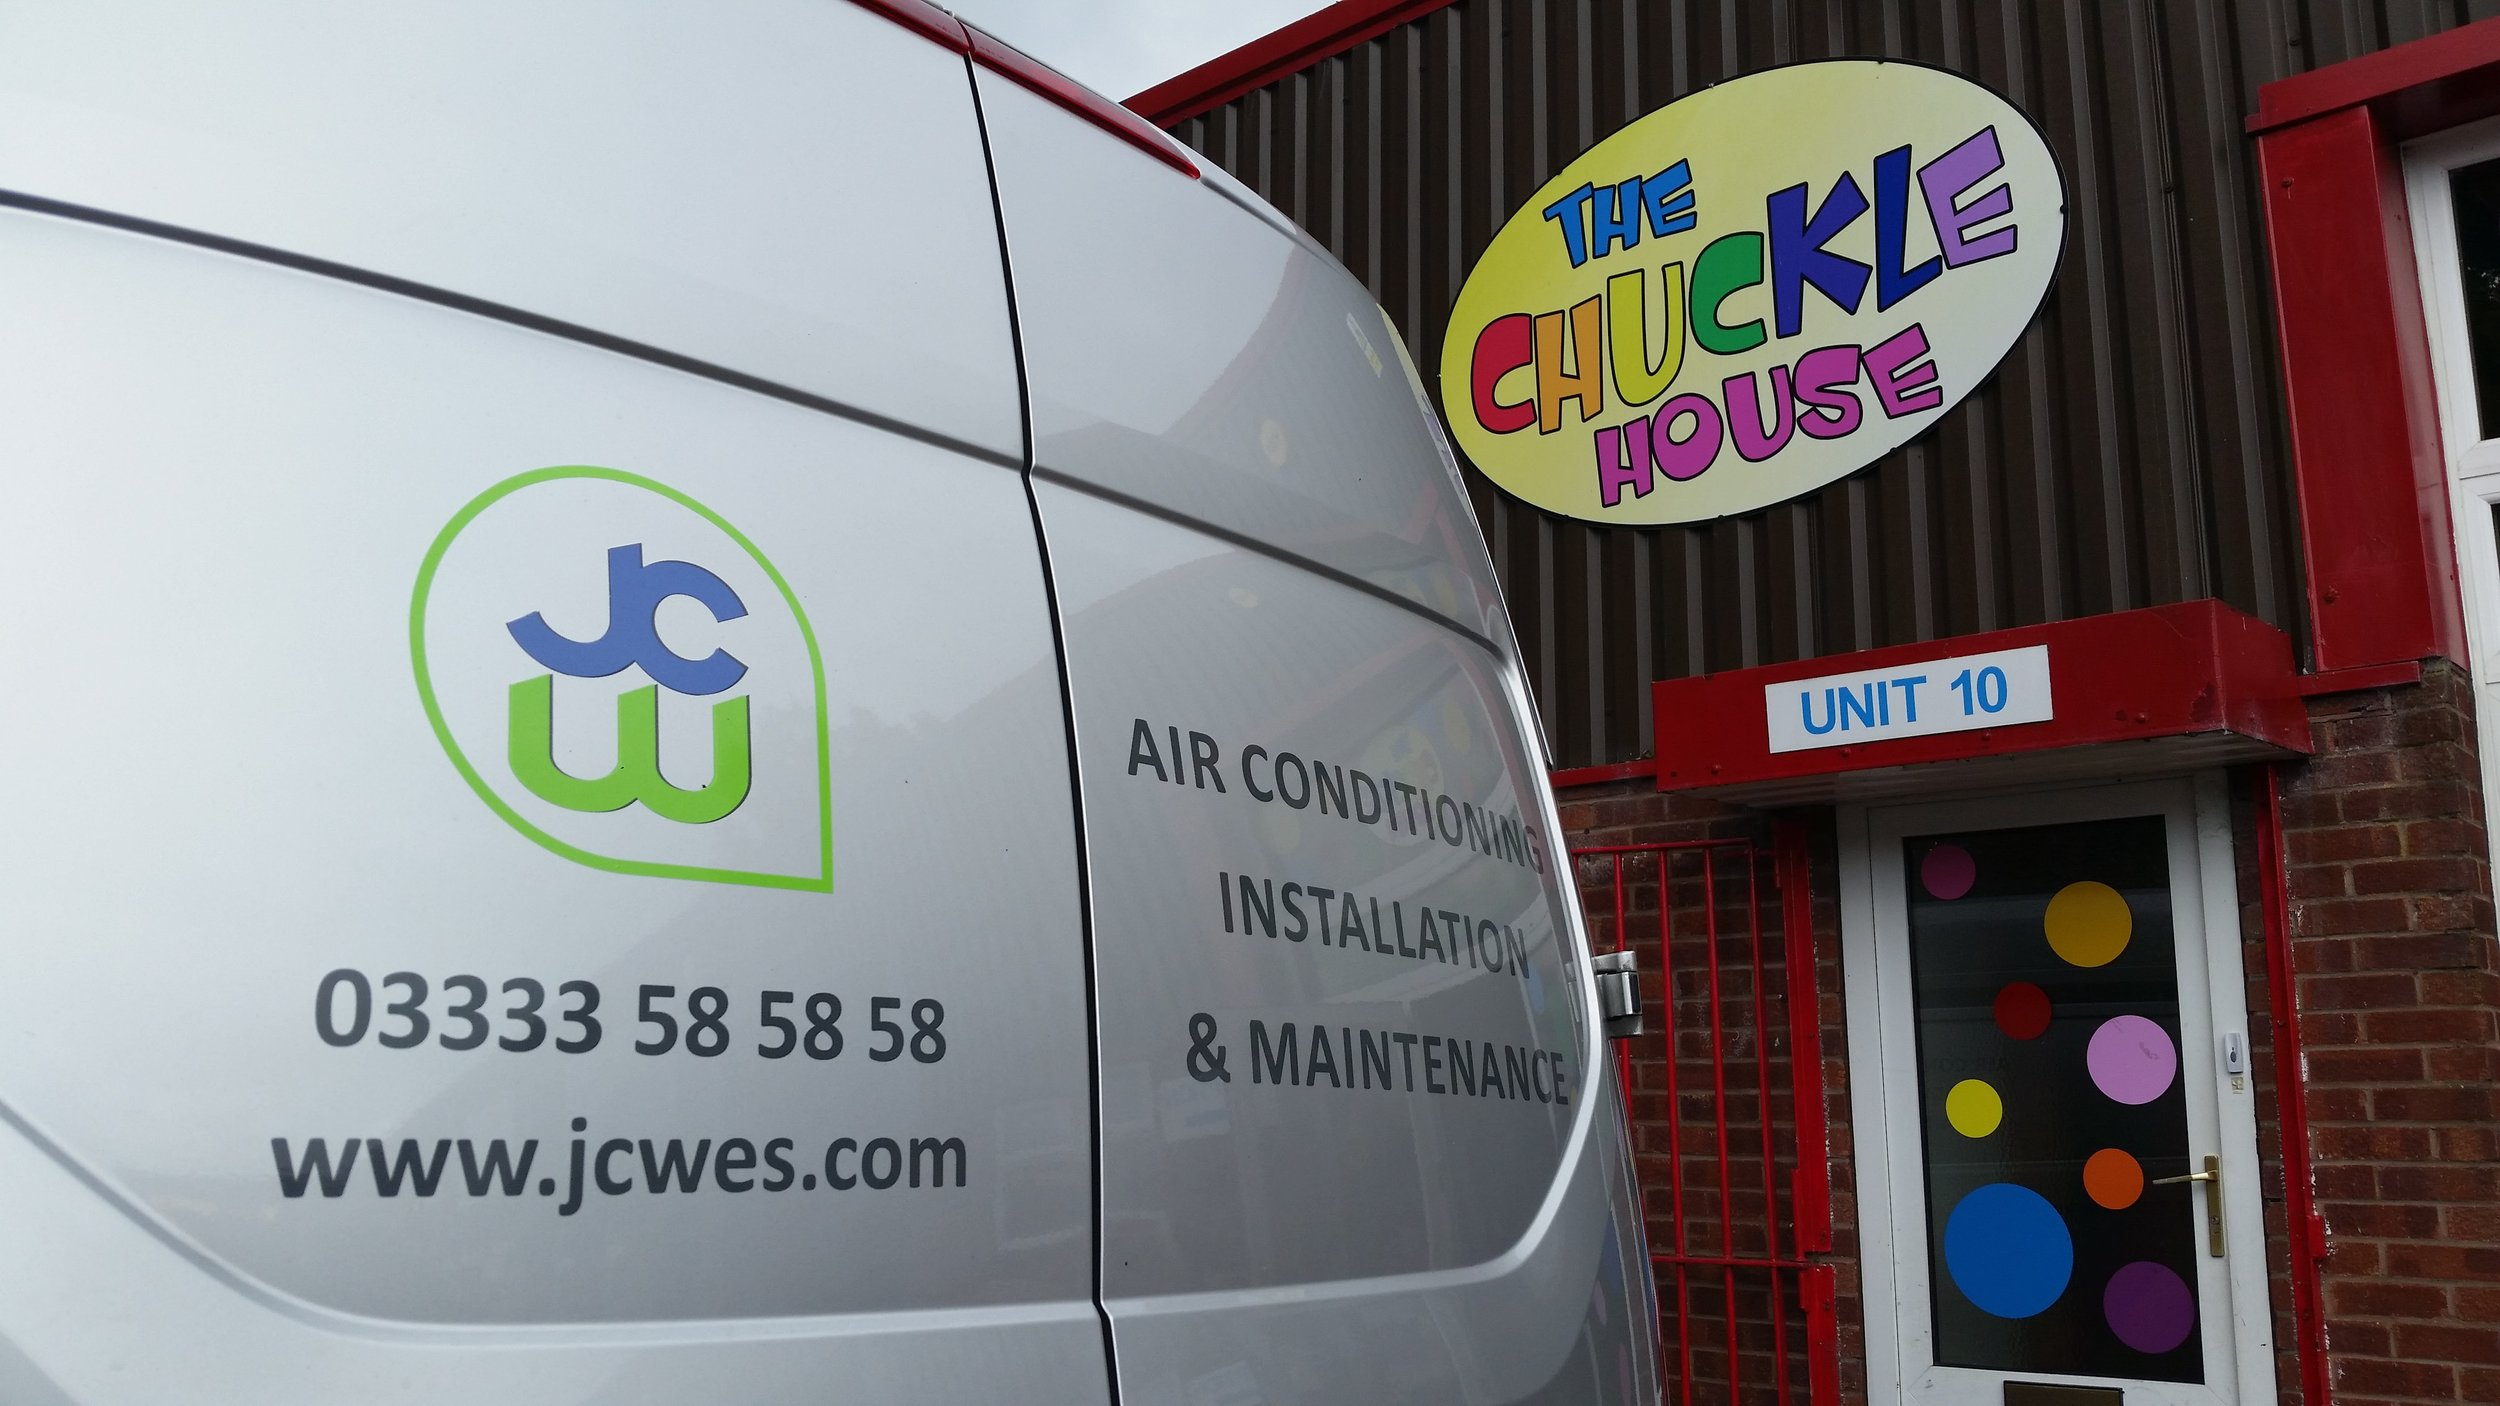 chuckles jcw air conditioning installation